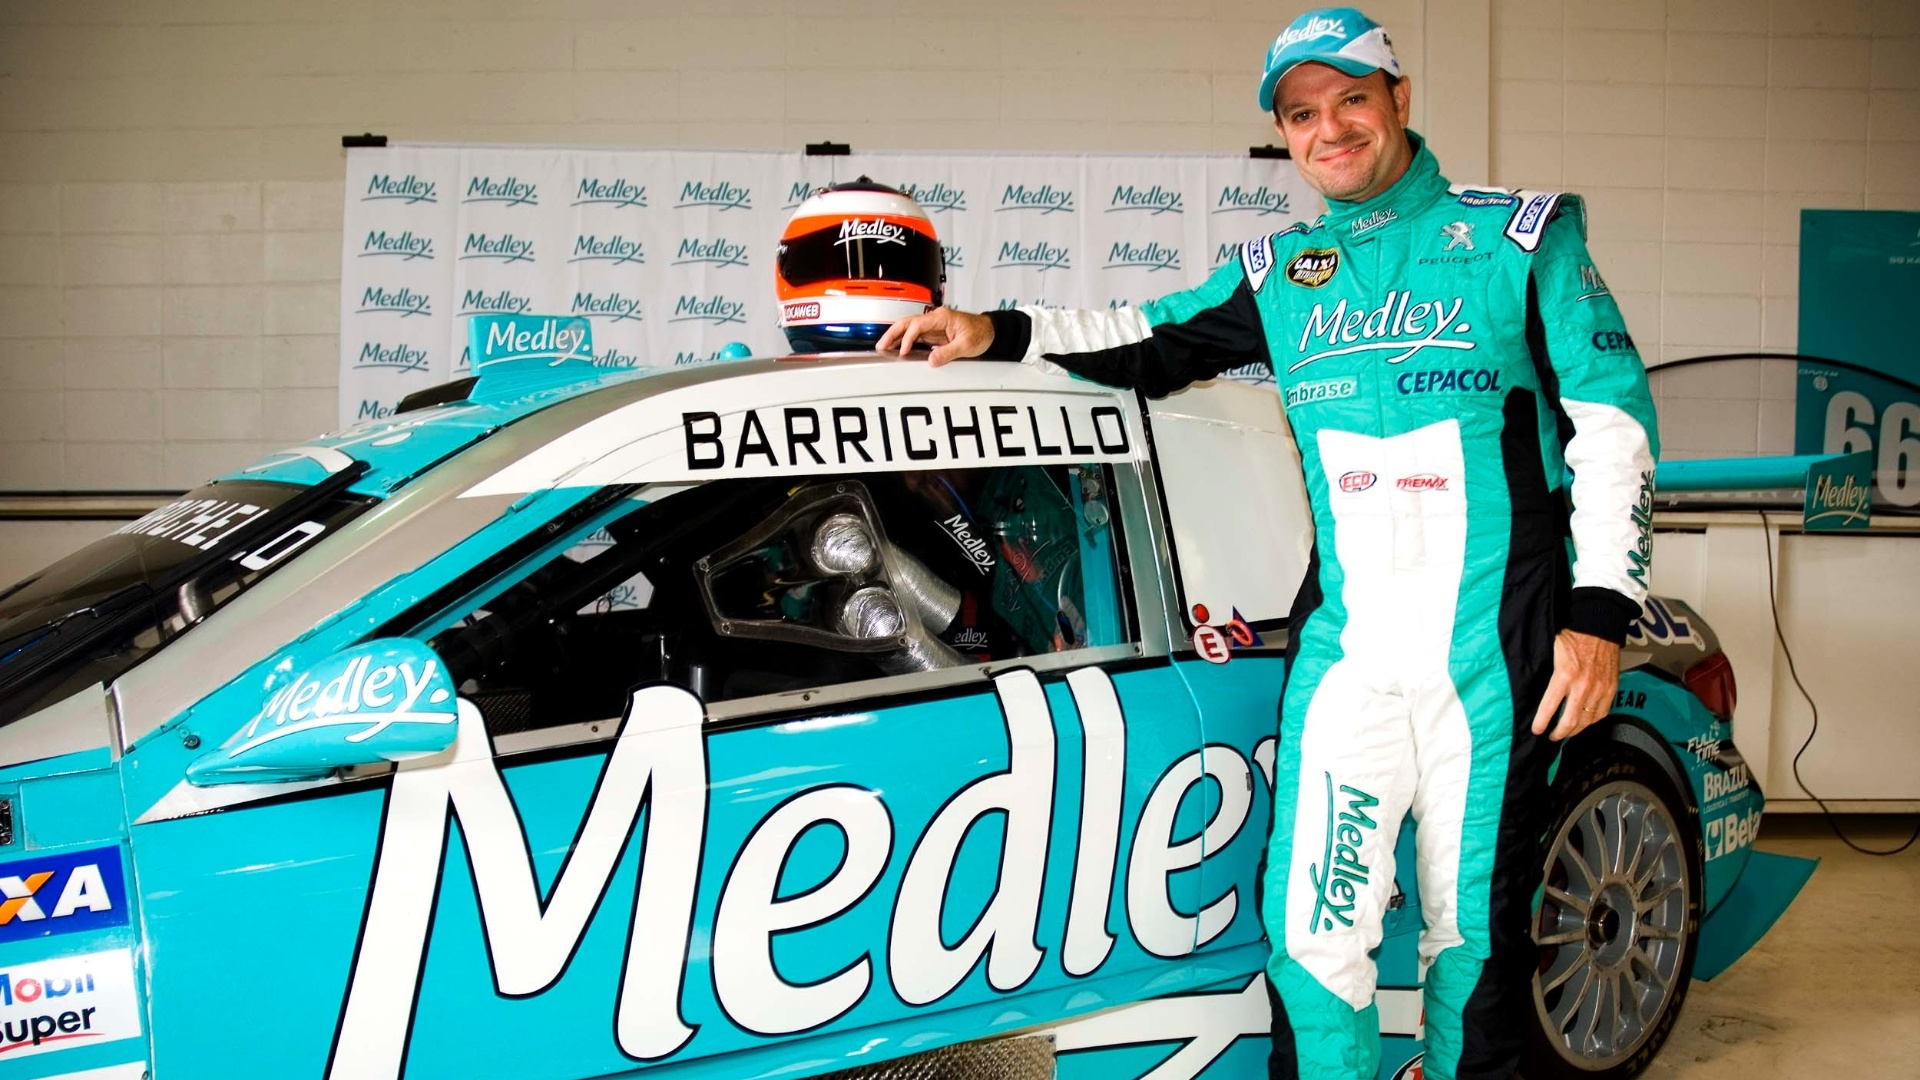 Rubens Barrichello posa ao lado do carro da Full Time, sua nova equipe na Stock Car